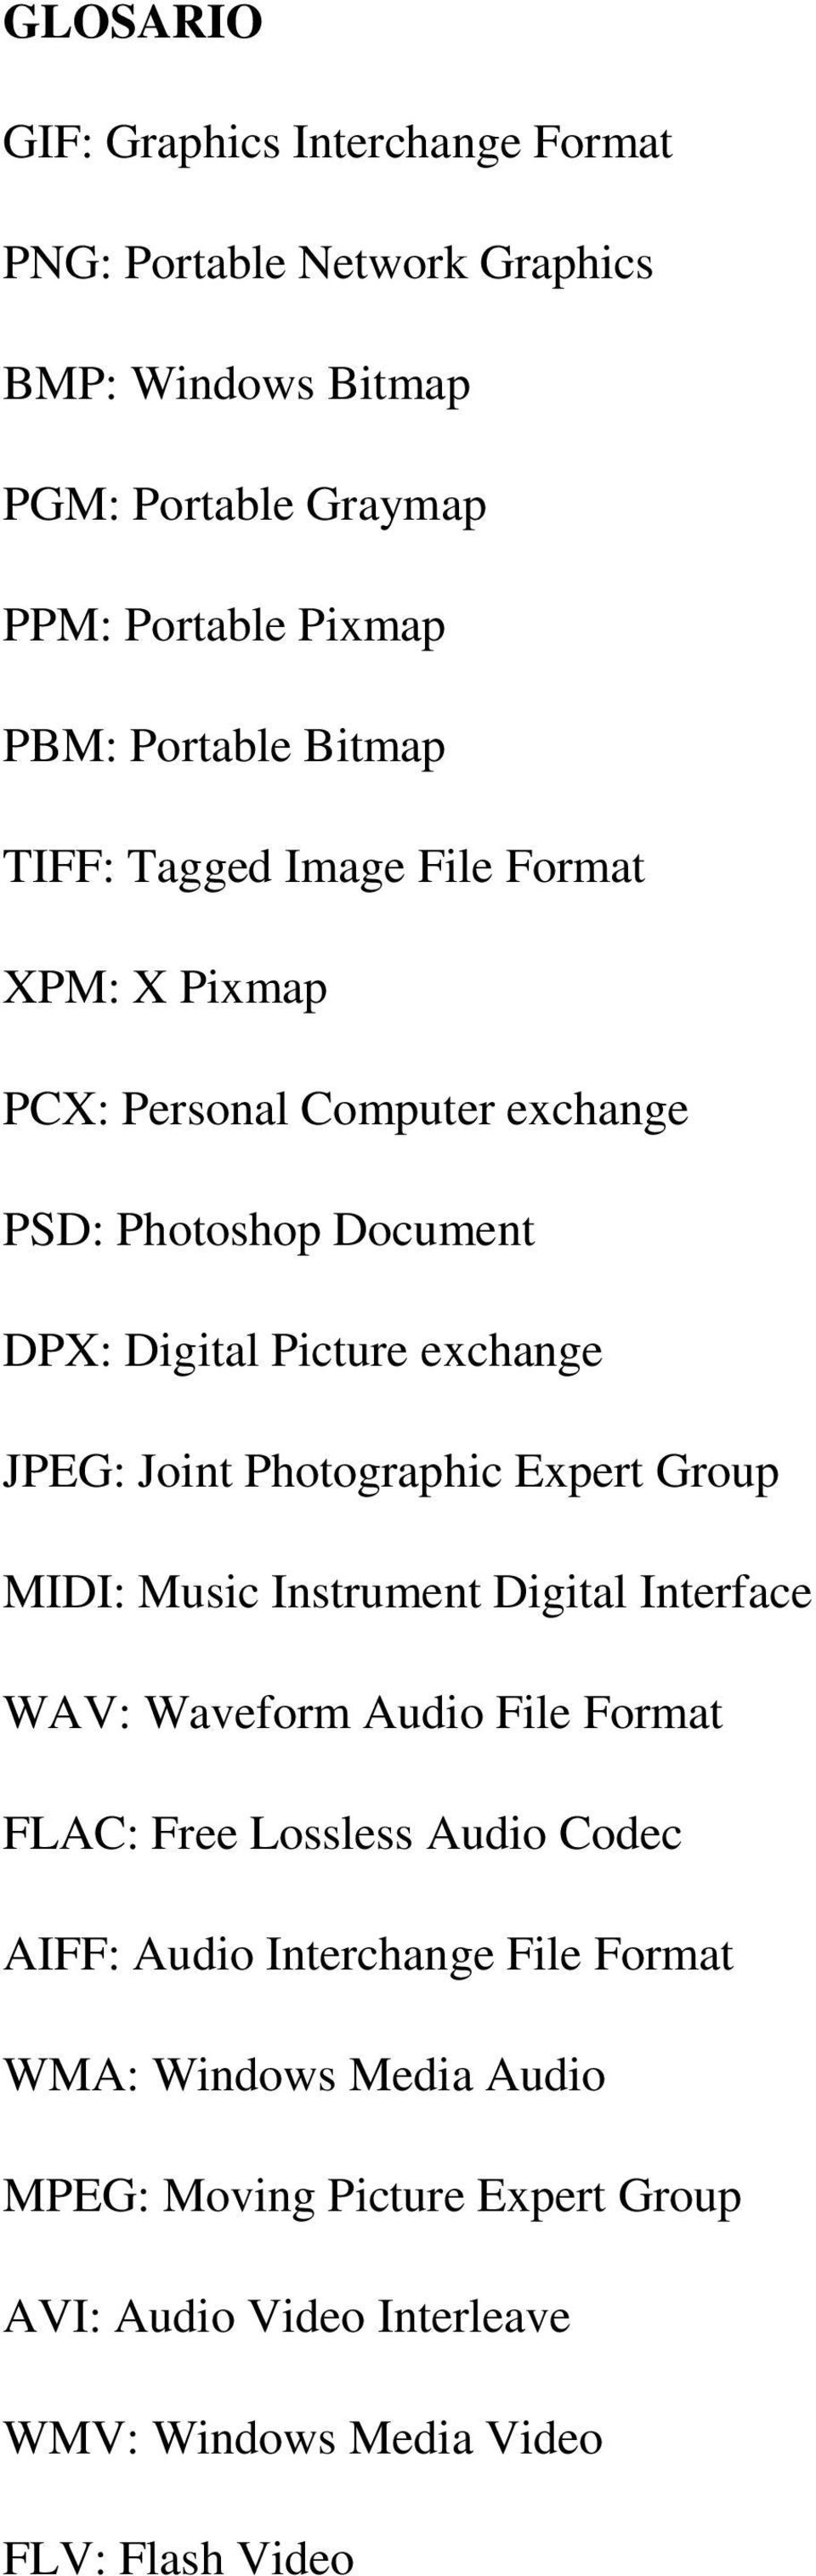 JPEG: Joint Photographic Expert Group MIDI: Music Instrument Digital Interface WAV: Waveform Audio File Format FLAC: Free Lossless Audio Codec AIFF: